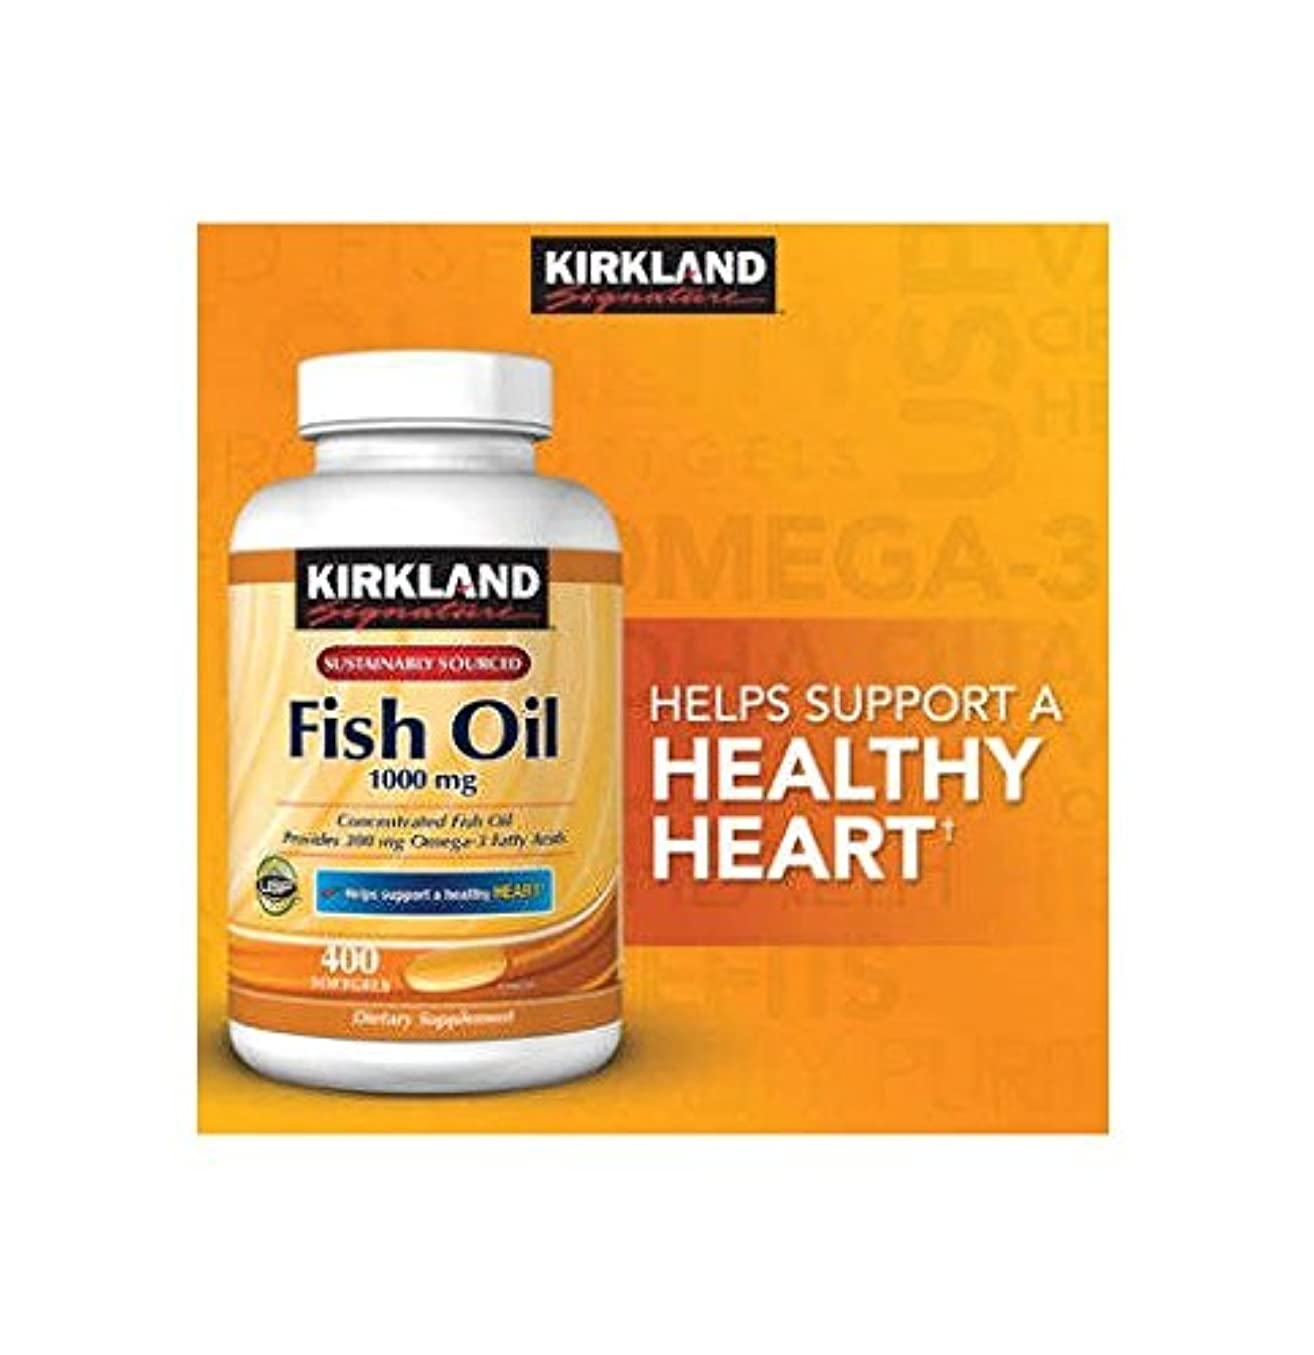 仲良しエレメンタル気分が悪いKirkland Signature Omega-3 Fish Oil Concentrate, 400 Softgels, 1000 mg Fish Oil with 30% Omega-3s (300 mg) 1200...